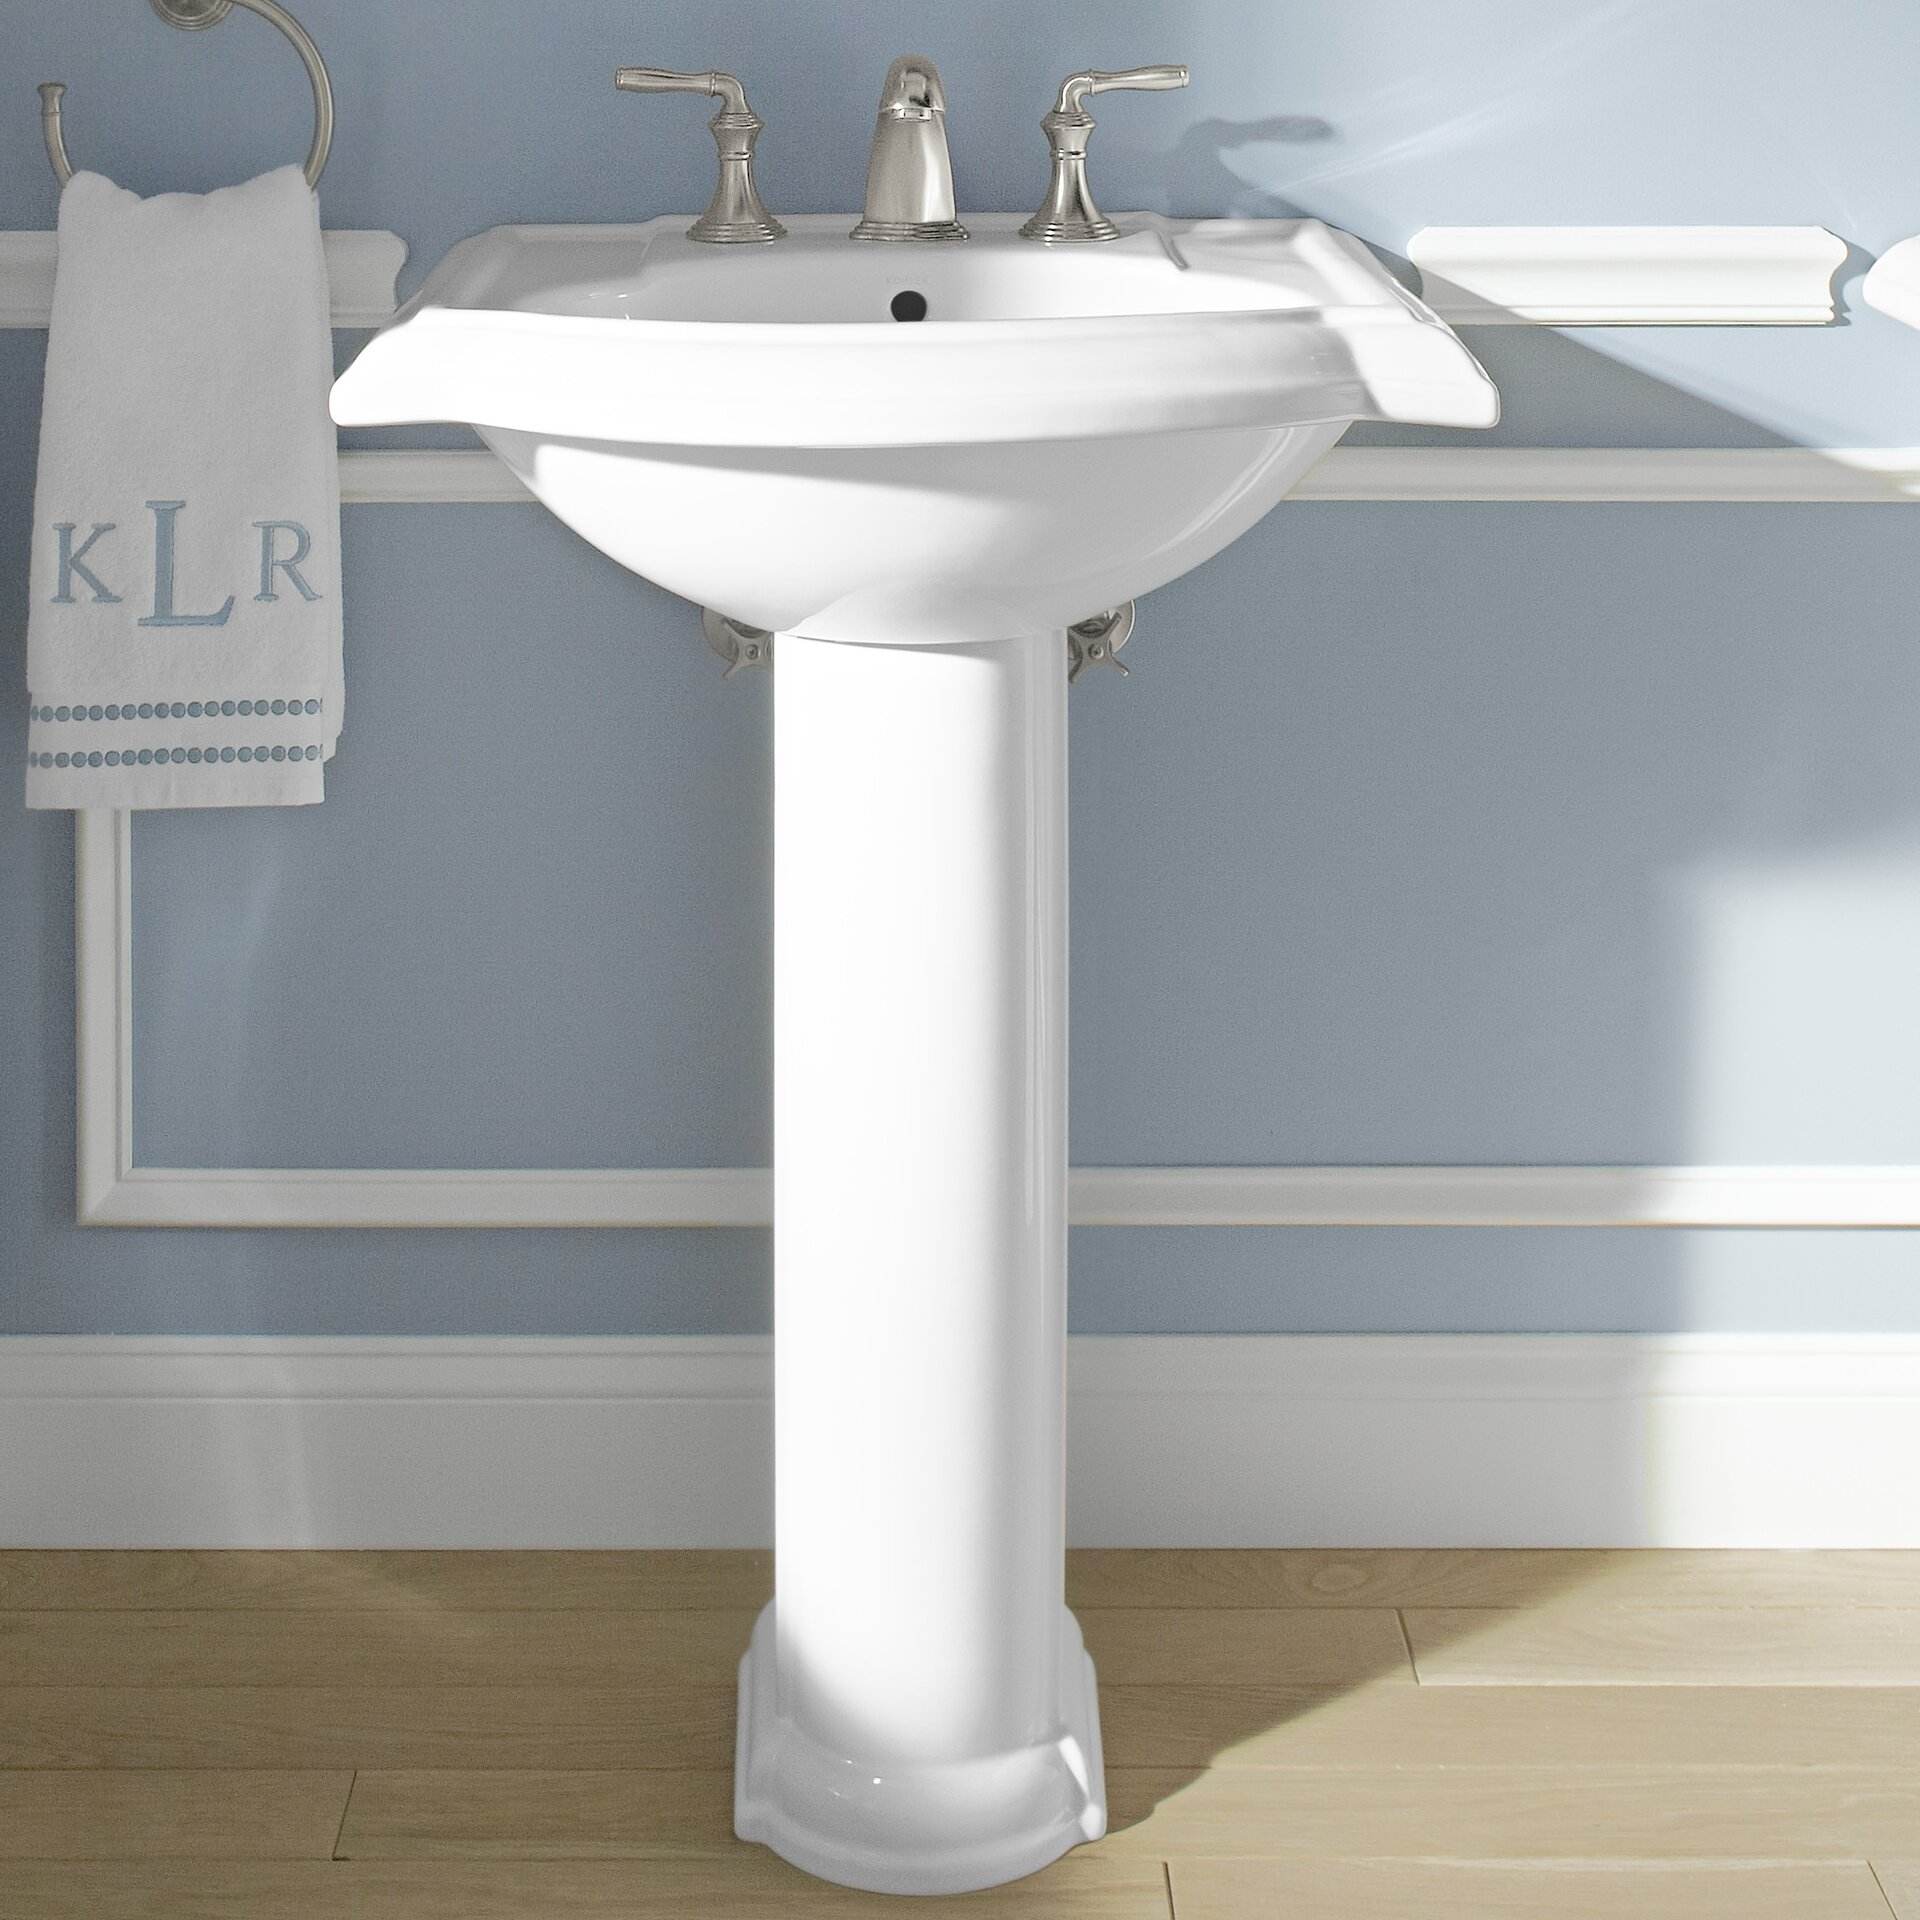 Bathroom Sinks Kohler : Bathroom Vanities Bathroom Sinks Bathroom Faucets Bathtubs Showers ...